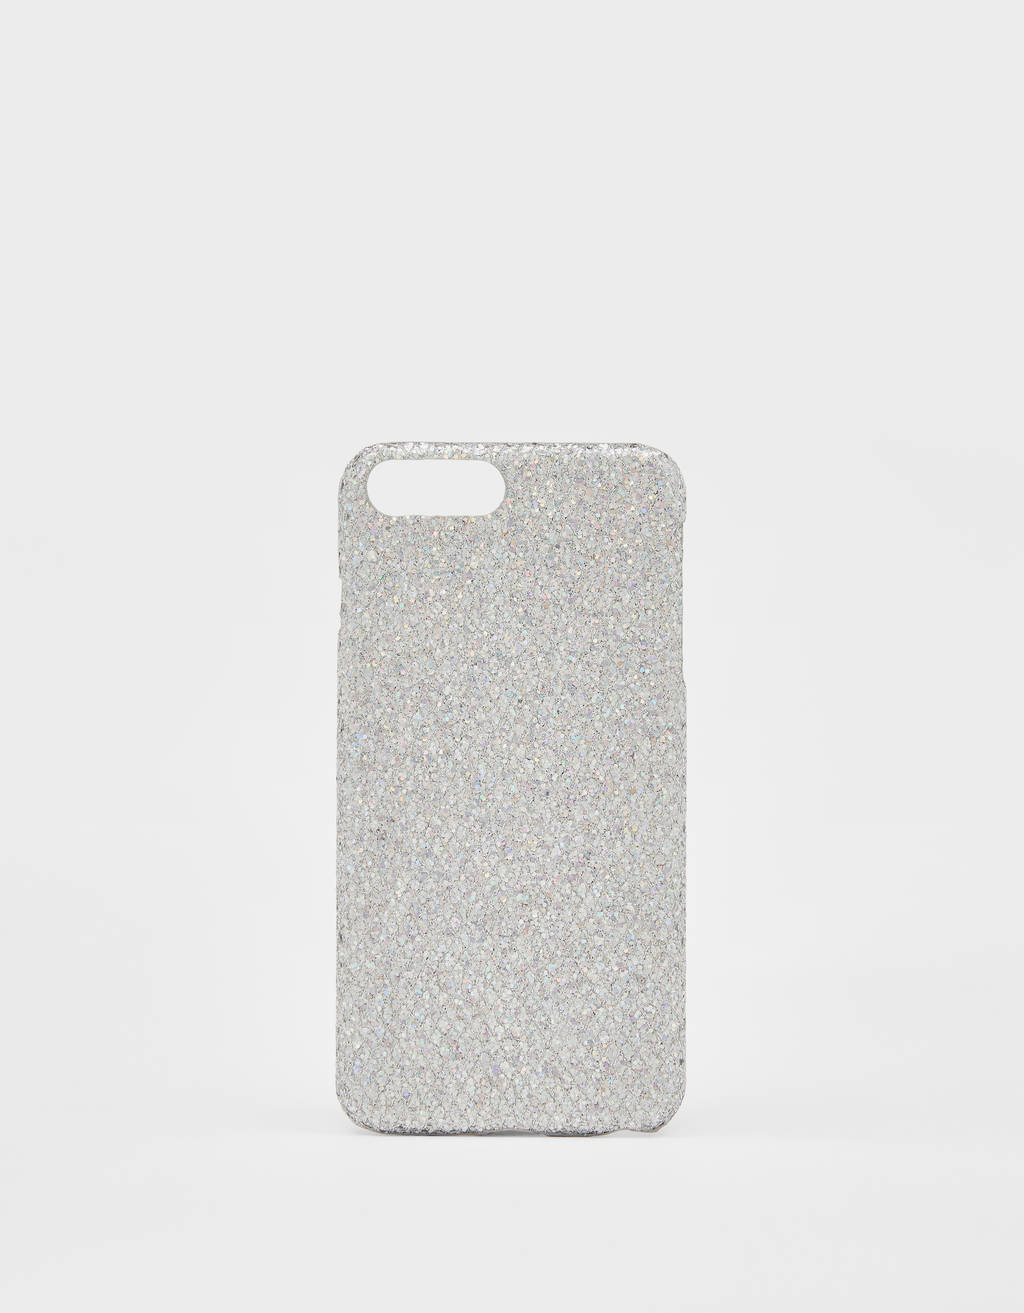 Sparkly iPhone 6 Plus / 7 Plus / 8 Plus case